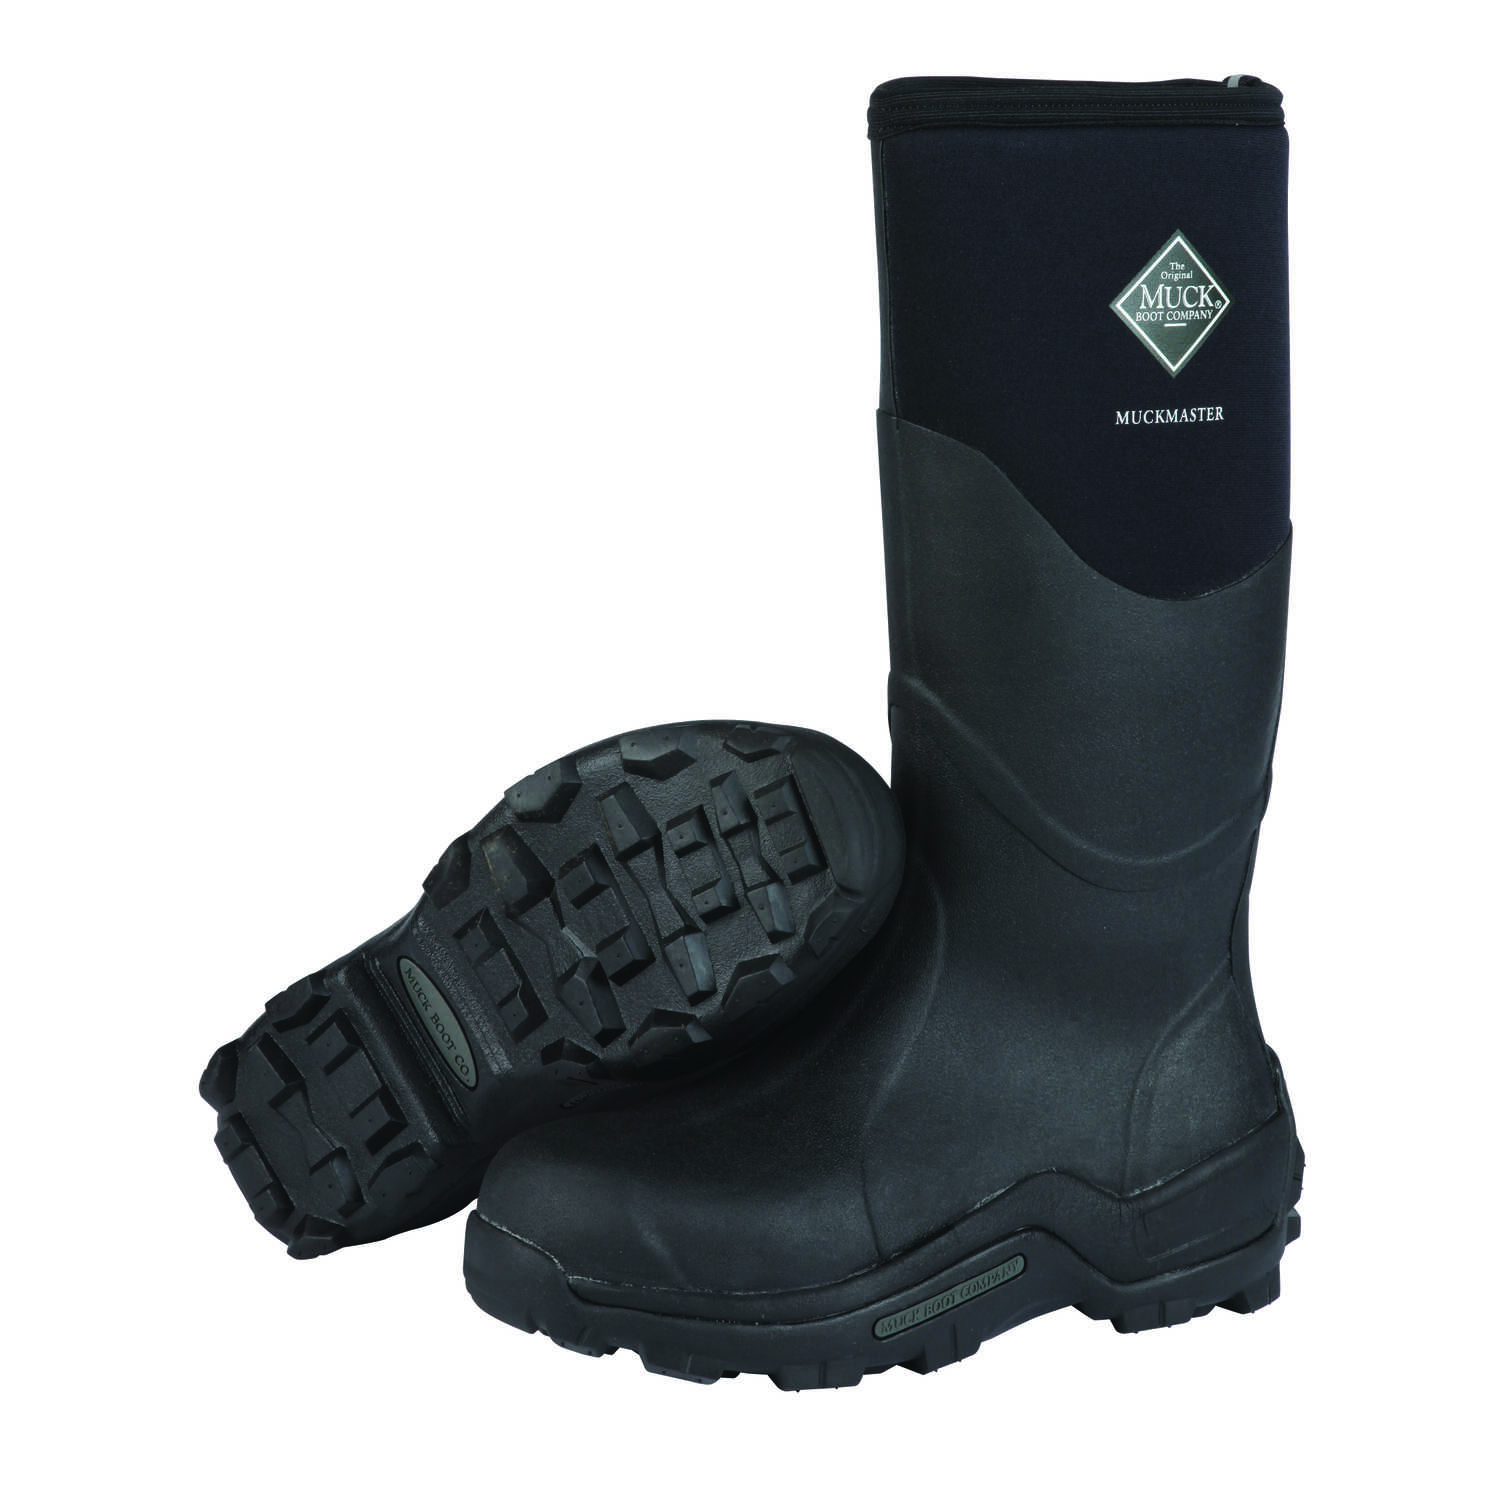 The Original Muck Boot Company  Muckmaster  Men's  Boots  10 US  Black